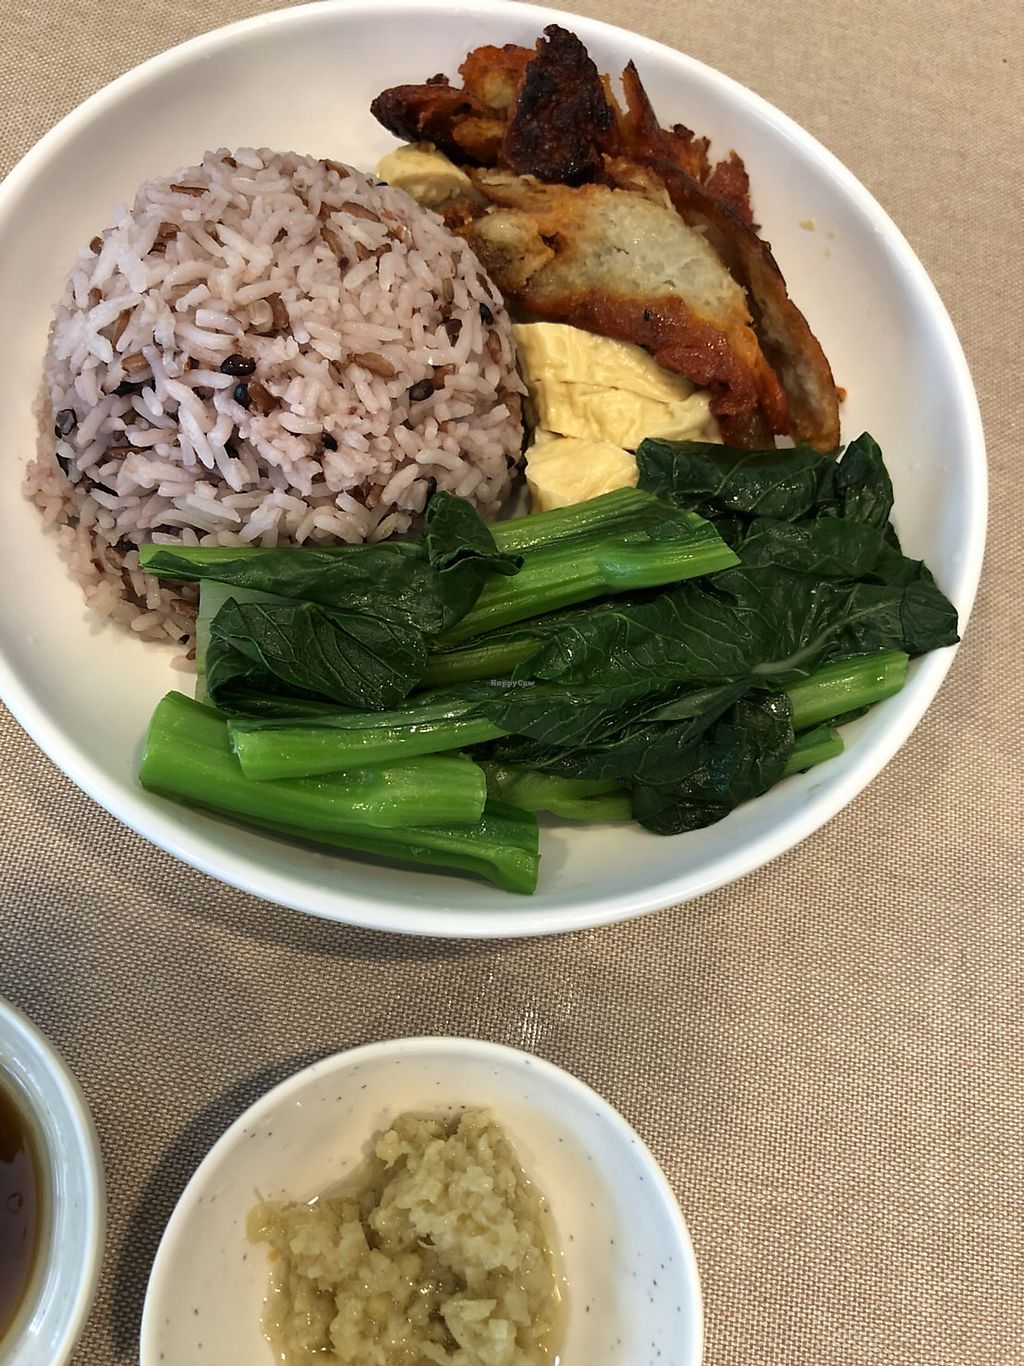 """Photo of Veggie Mama  by <a href=""""/members/profile/Peg-LamMa"""">Peg-LamMa</a> <br/>Chinese style roasted pork and chicken (vegan) <br/> March 25, 2018  - <a href='/contact/abuse/image/35309/375819'>Report</a>"""